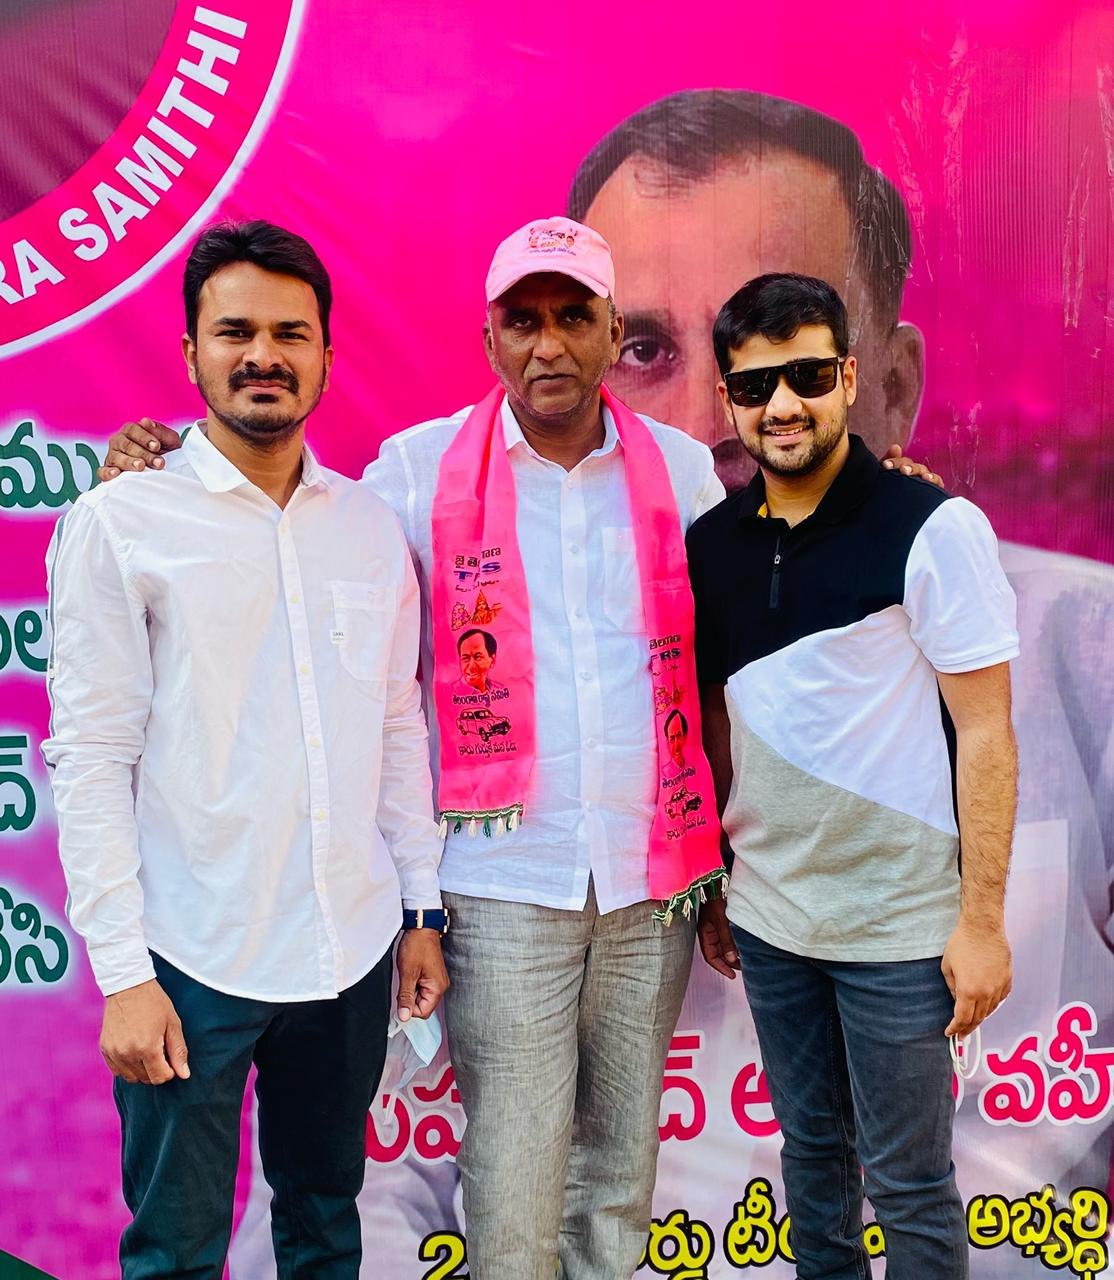 Areeb Shahezan campaigns in support of TRS Candidate Abdul Waheed in (SIDDIPET)